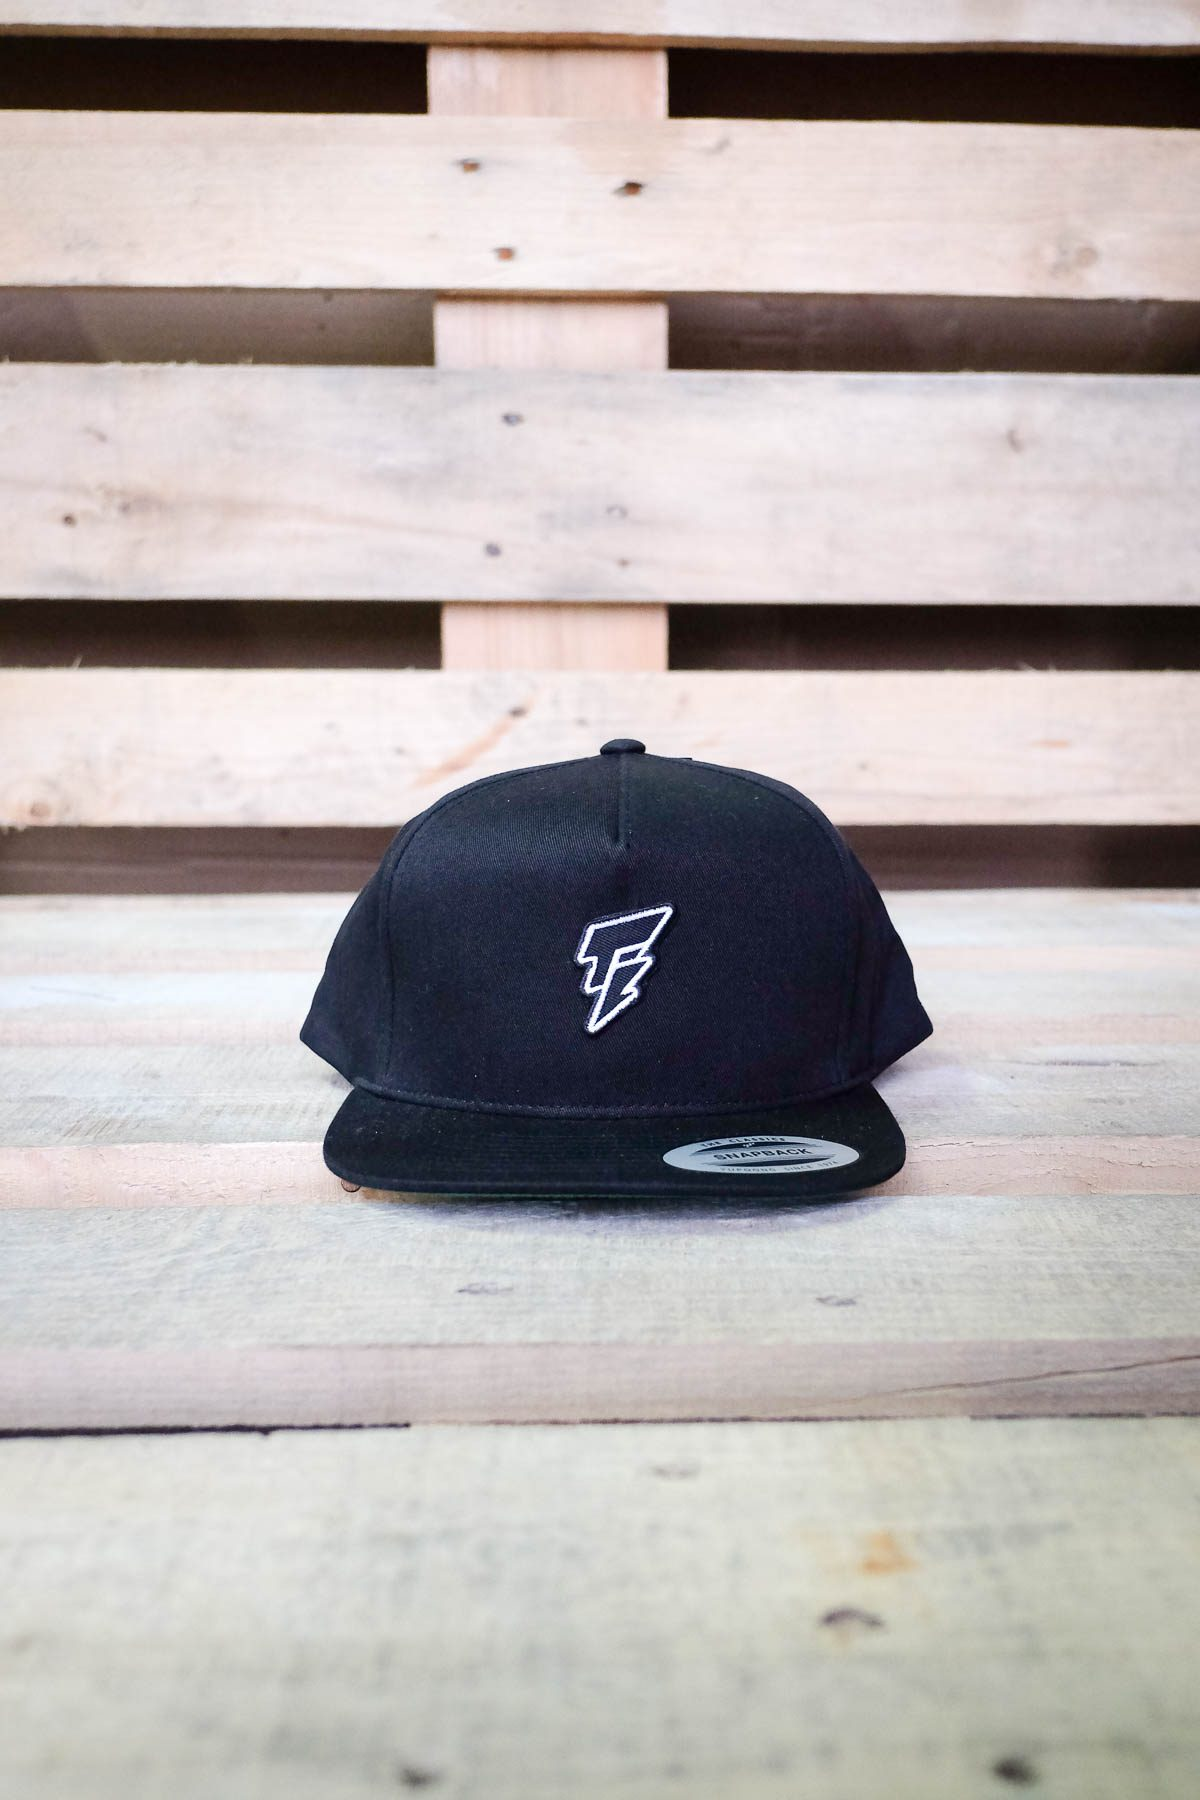 Full Mine CLASSIC SNAPBACK Patch Logo